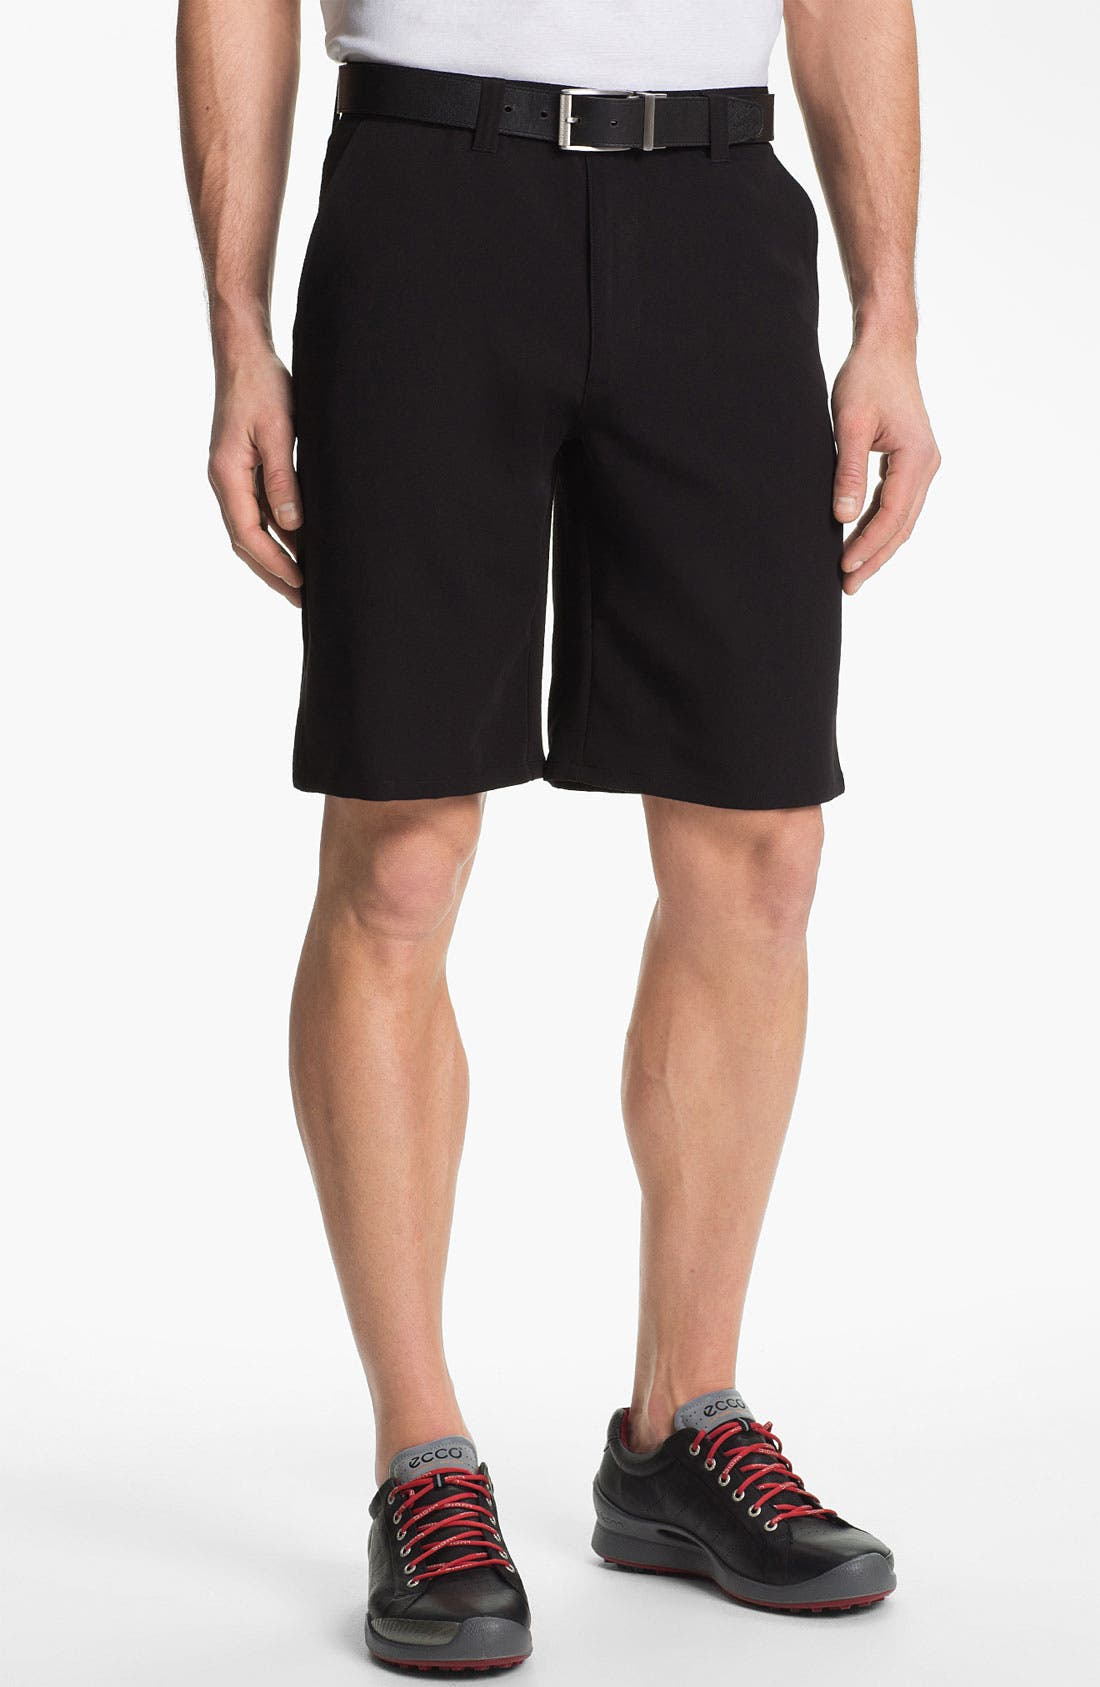 Alternate Image 1 Selected - Travis Mathew 'Turner' Golf Shorts